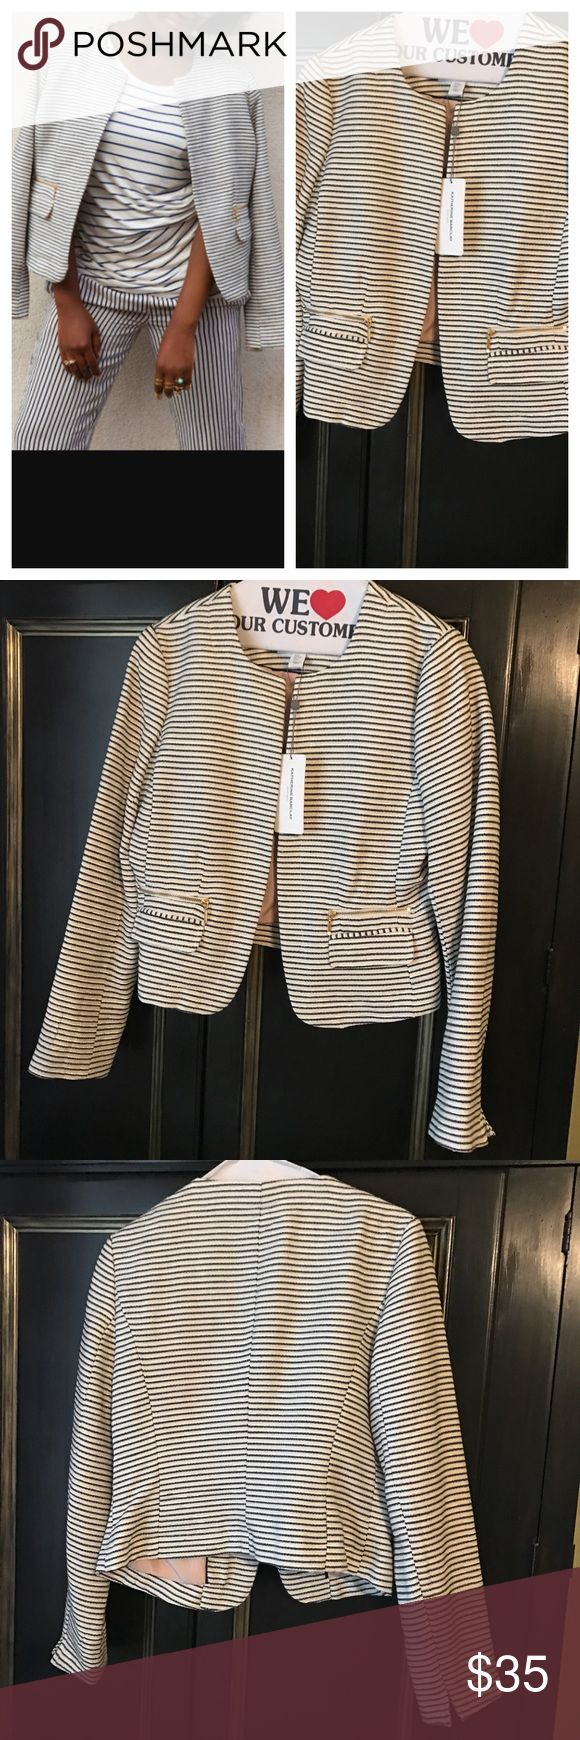 Katherine Barclays striped blazer jacket w pockets Very cute jacket with great stripes and zipper pocket - could be worn in so many different ways! Katherine Barclay Jackets & Coats Blazers